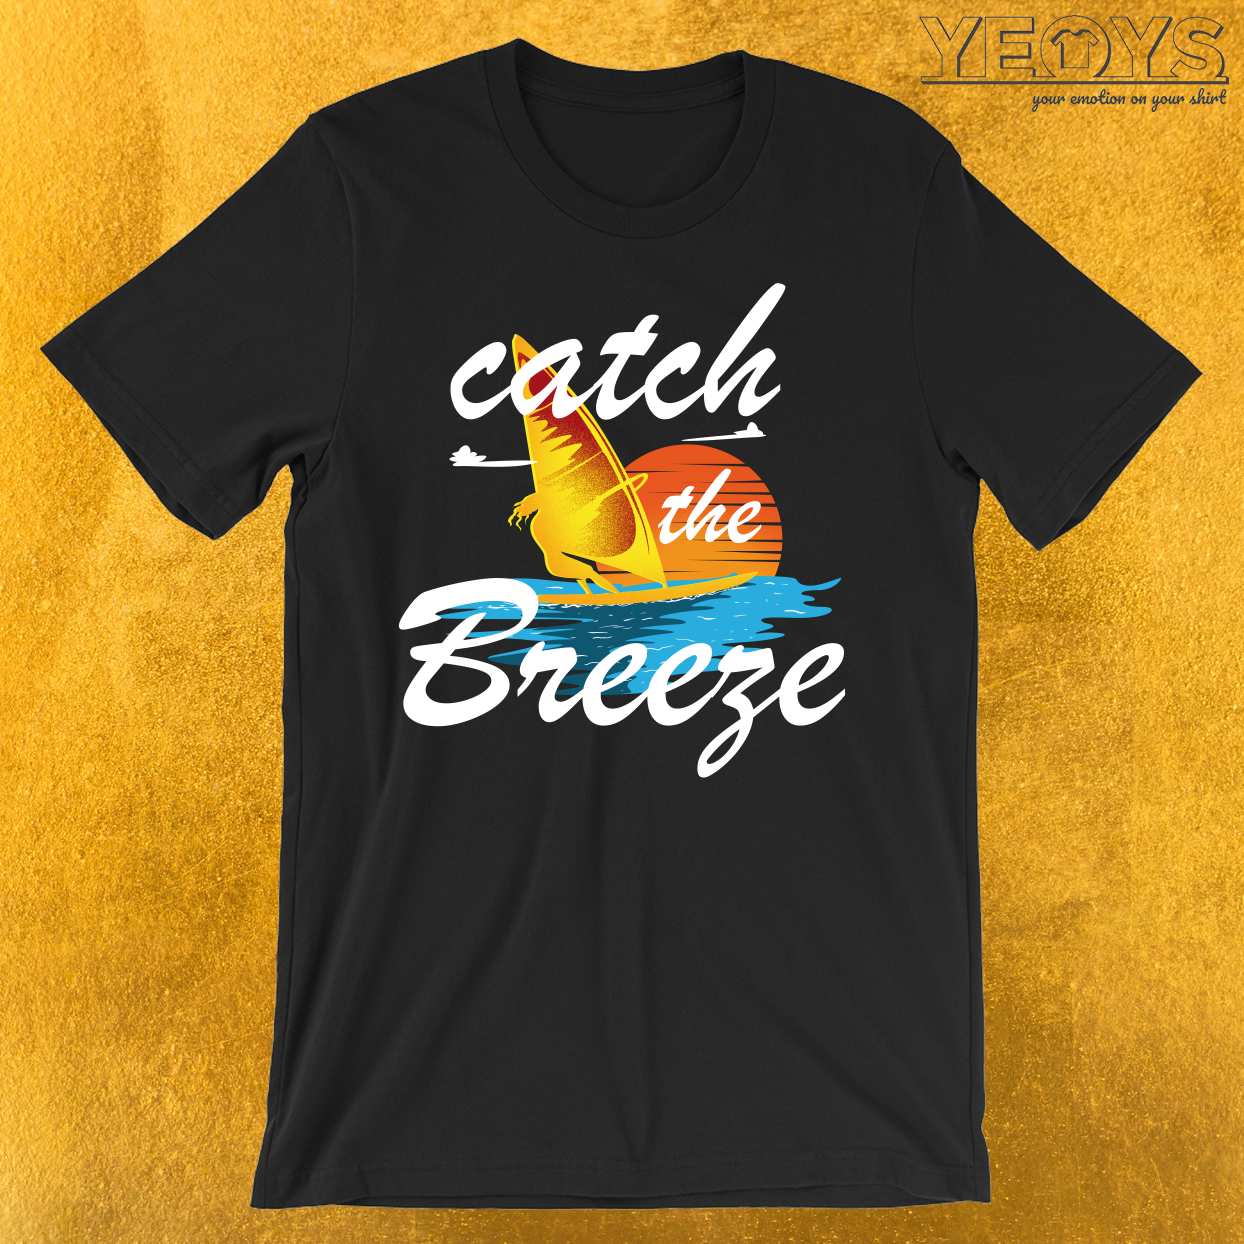 Catch The Breeze T-Shirt